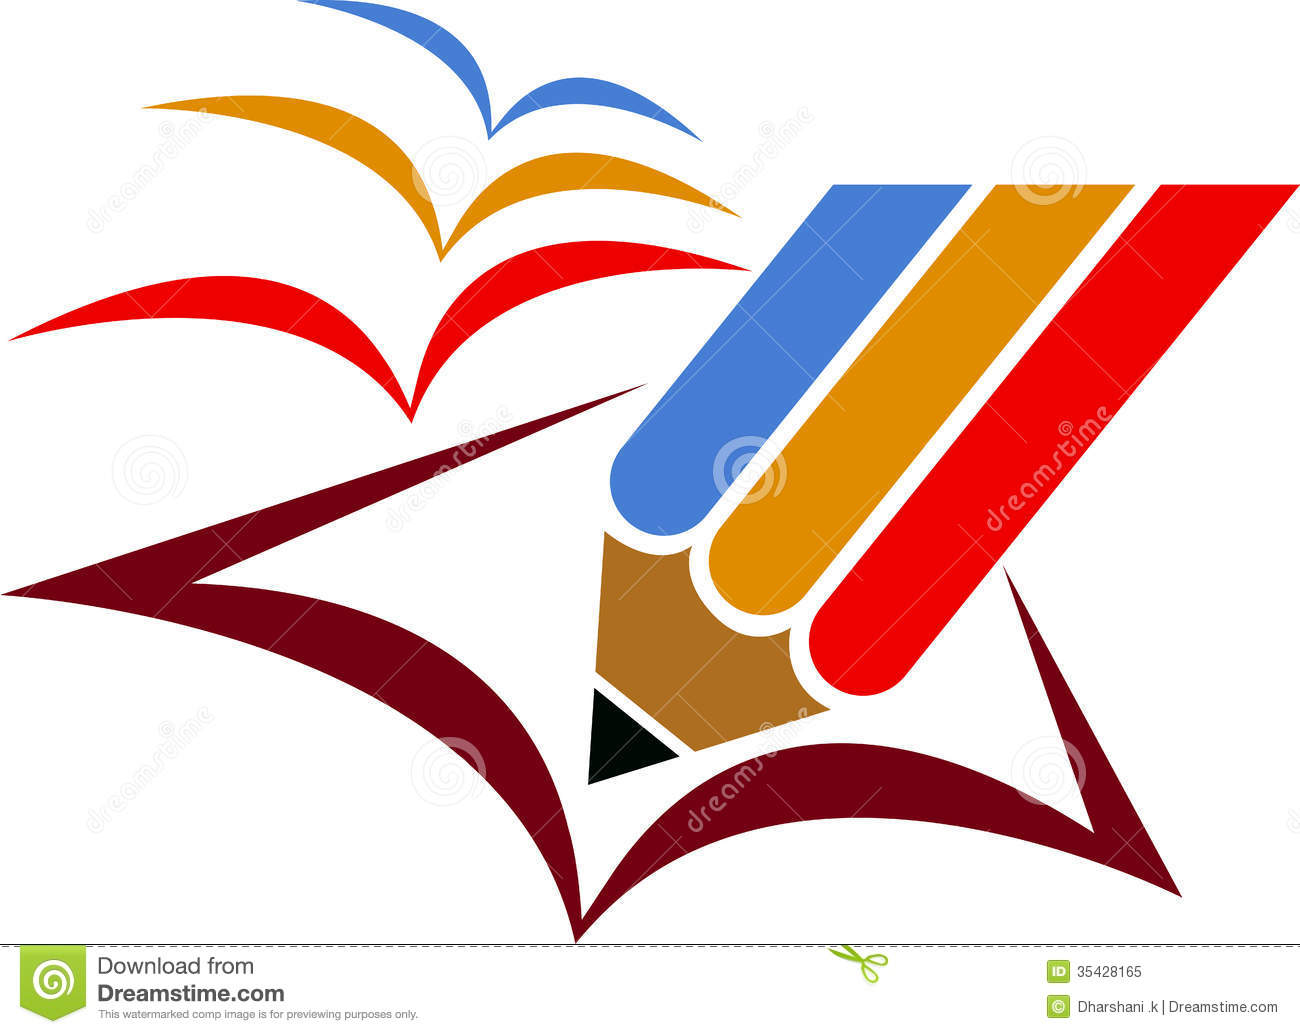 Illustration art of a freedom education logo with isolated background.